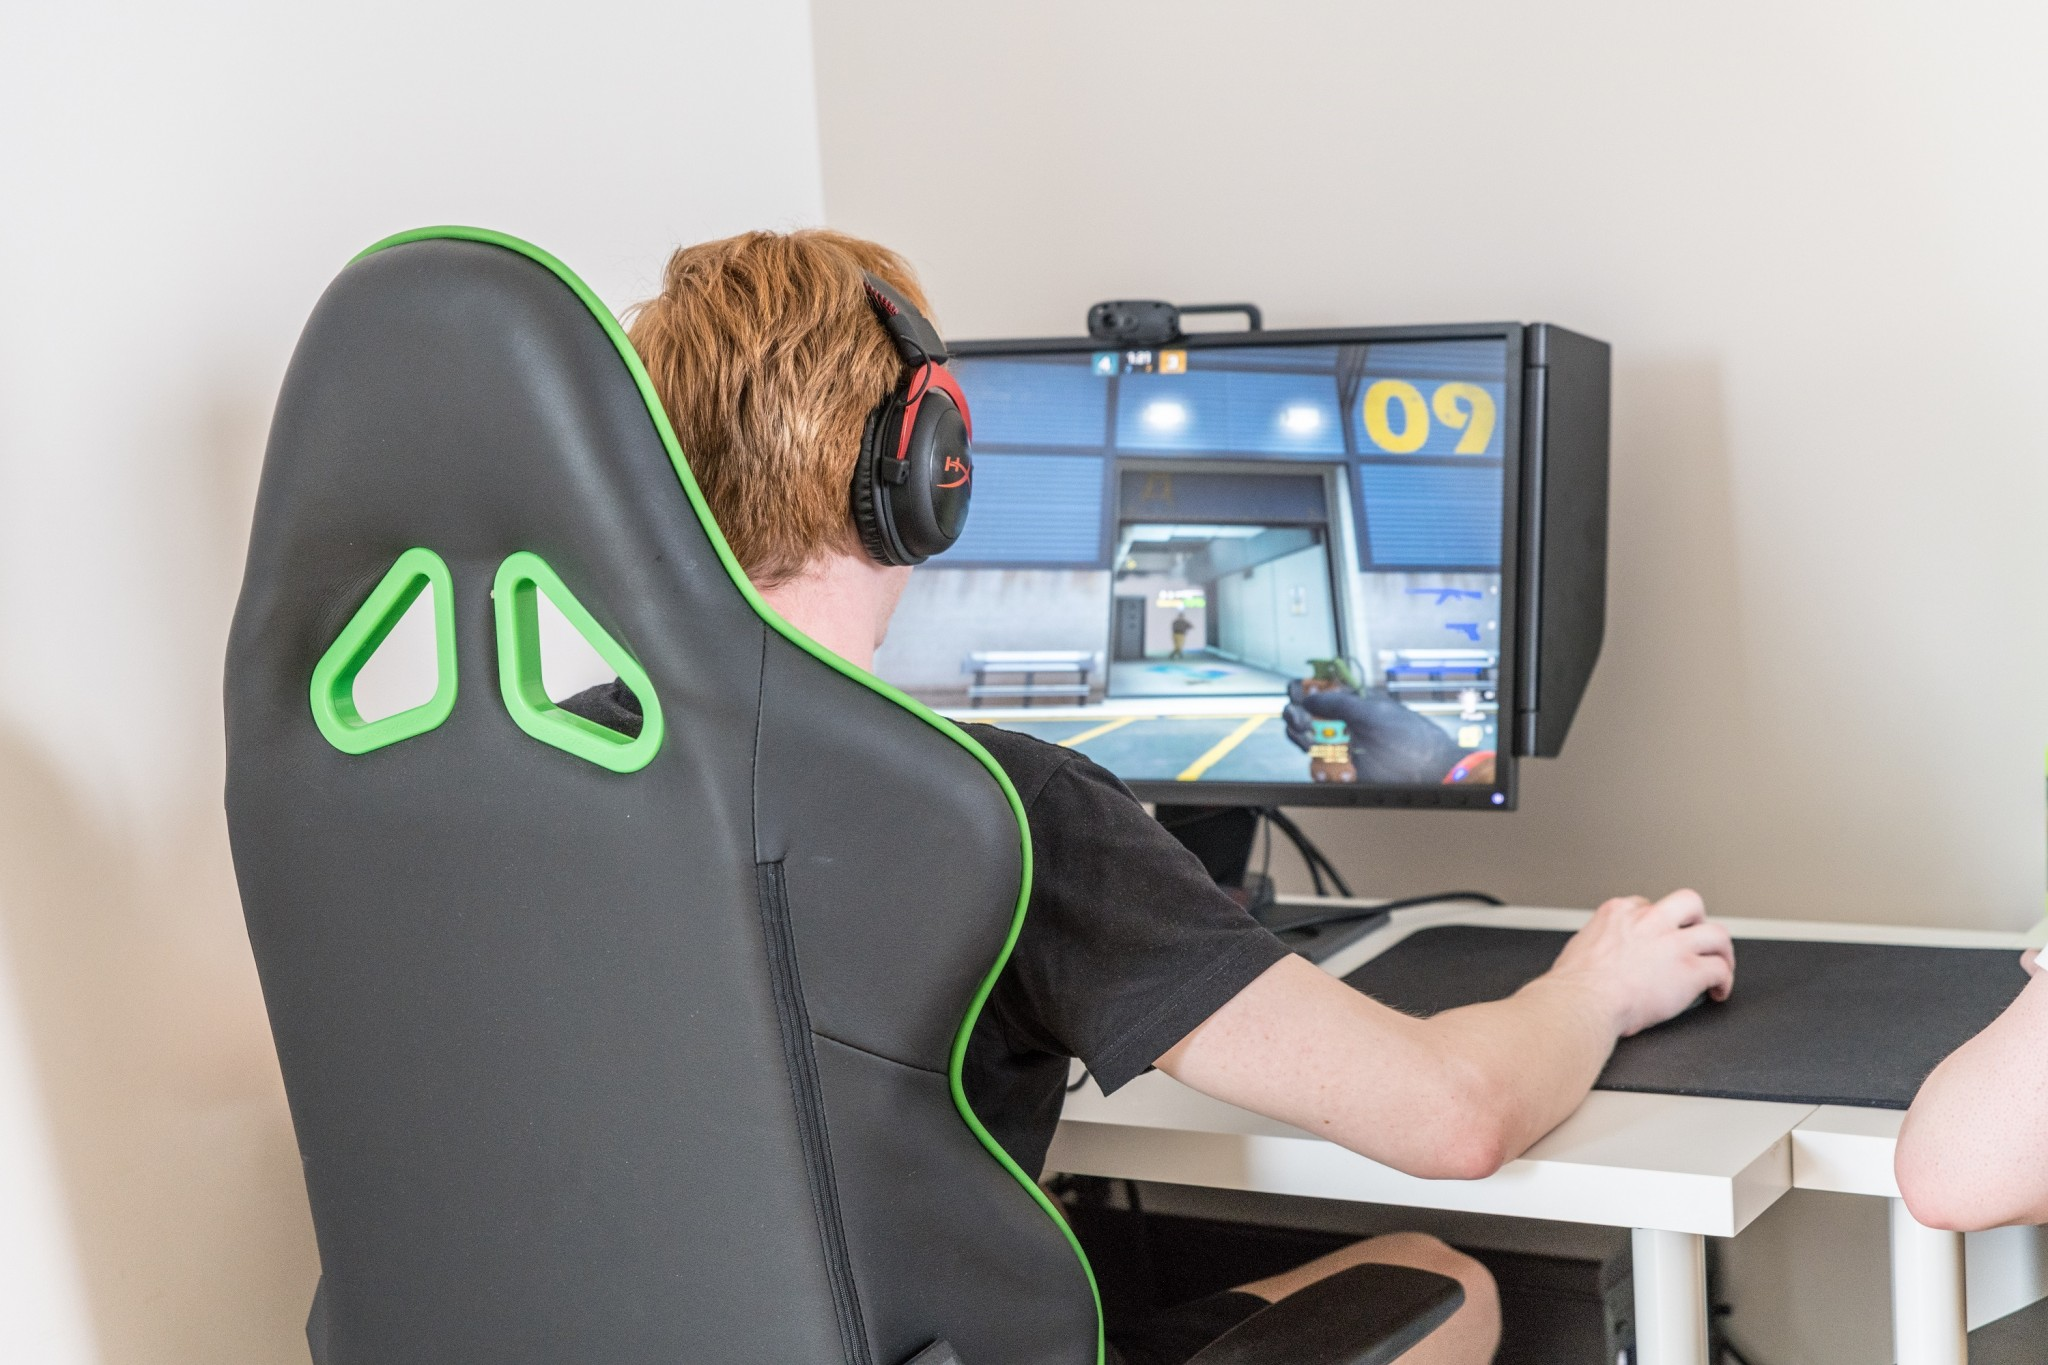 A Monolith player in action. Photo: Skoltech.